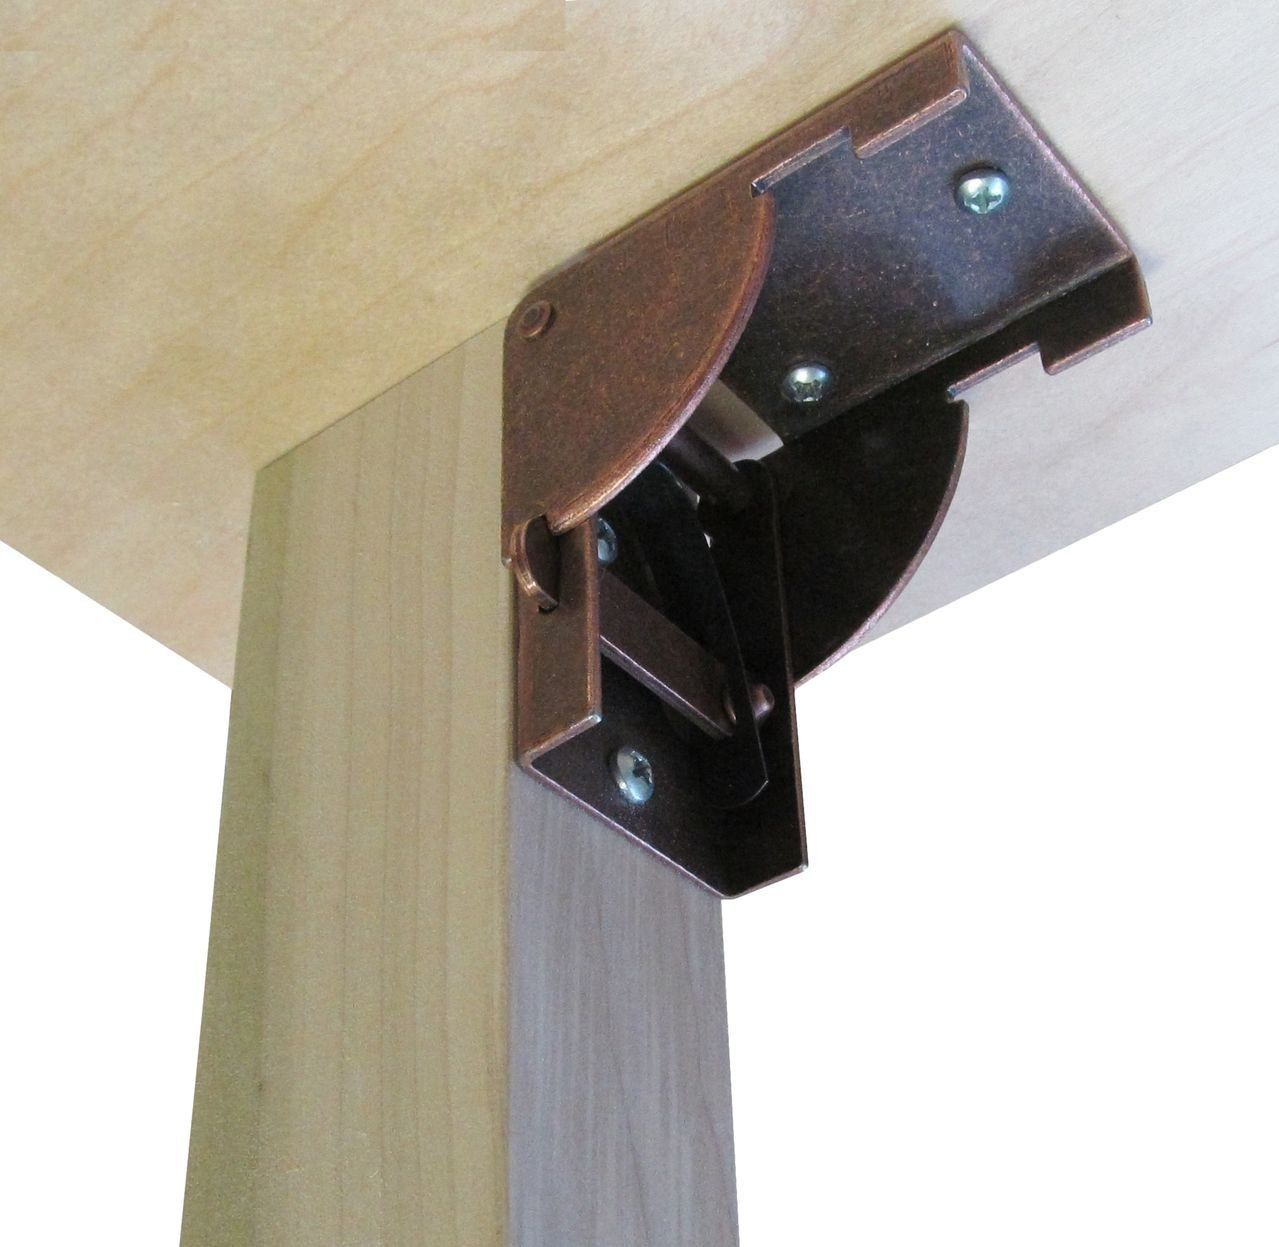 D.H.S. Posi-Lock Folding Leg Bracket for Wall Mounted Work Bench / Fold  Down Table (2 pcs.) - - Traveller Location